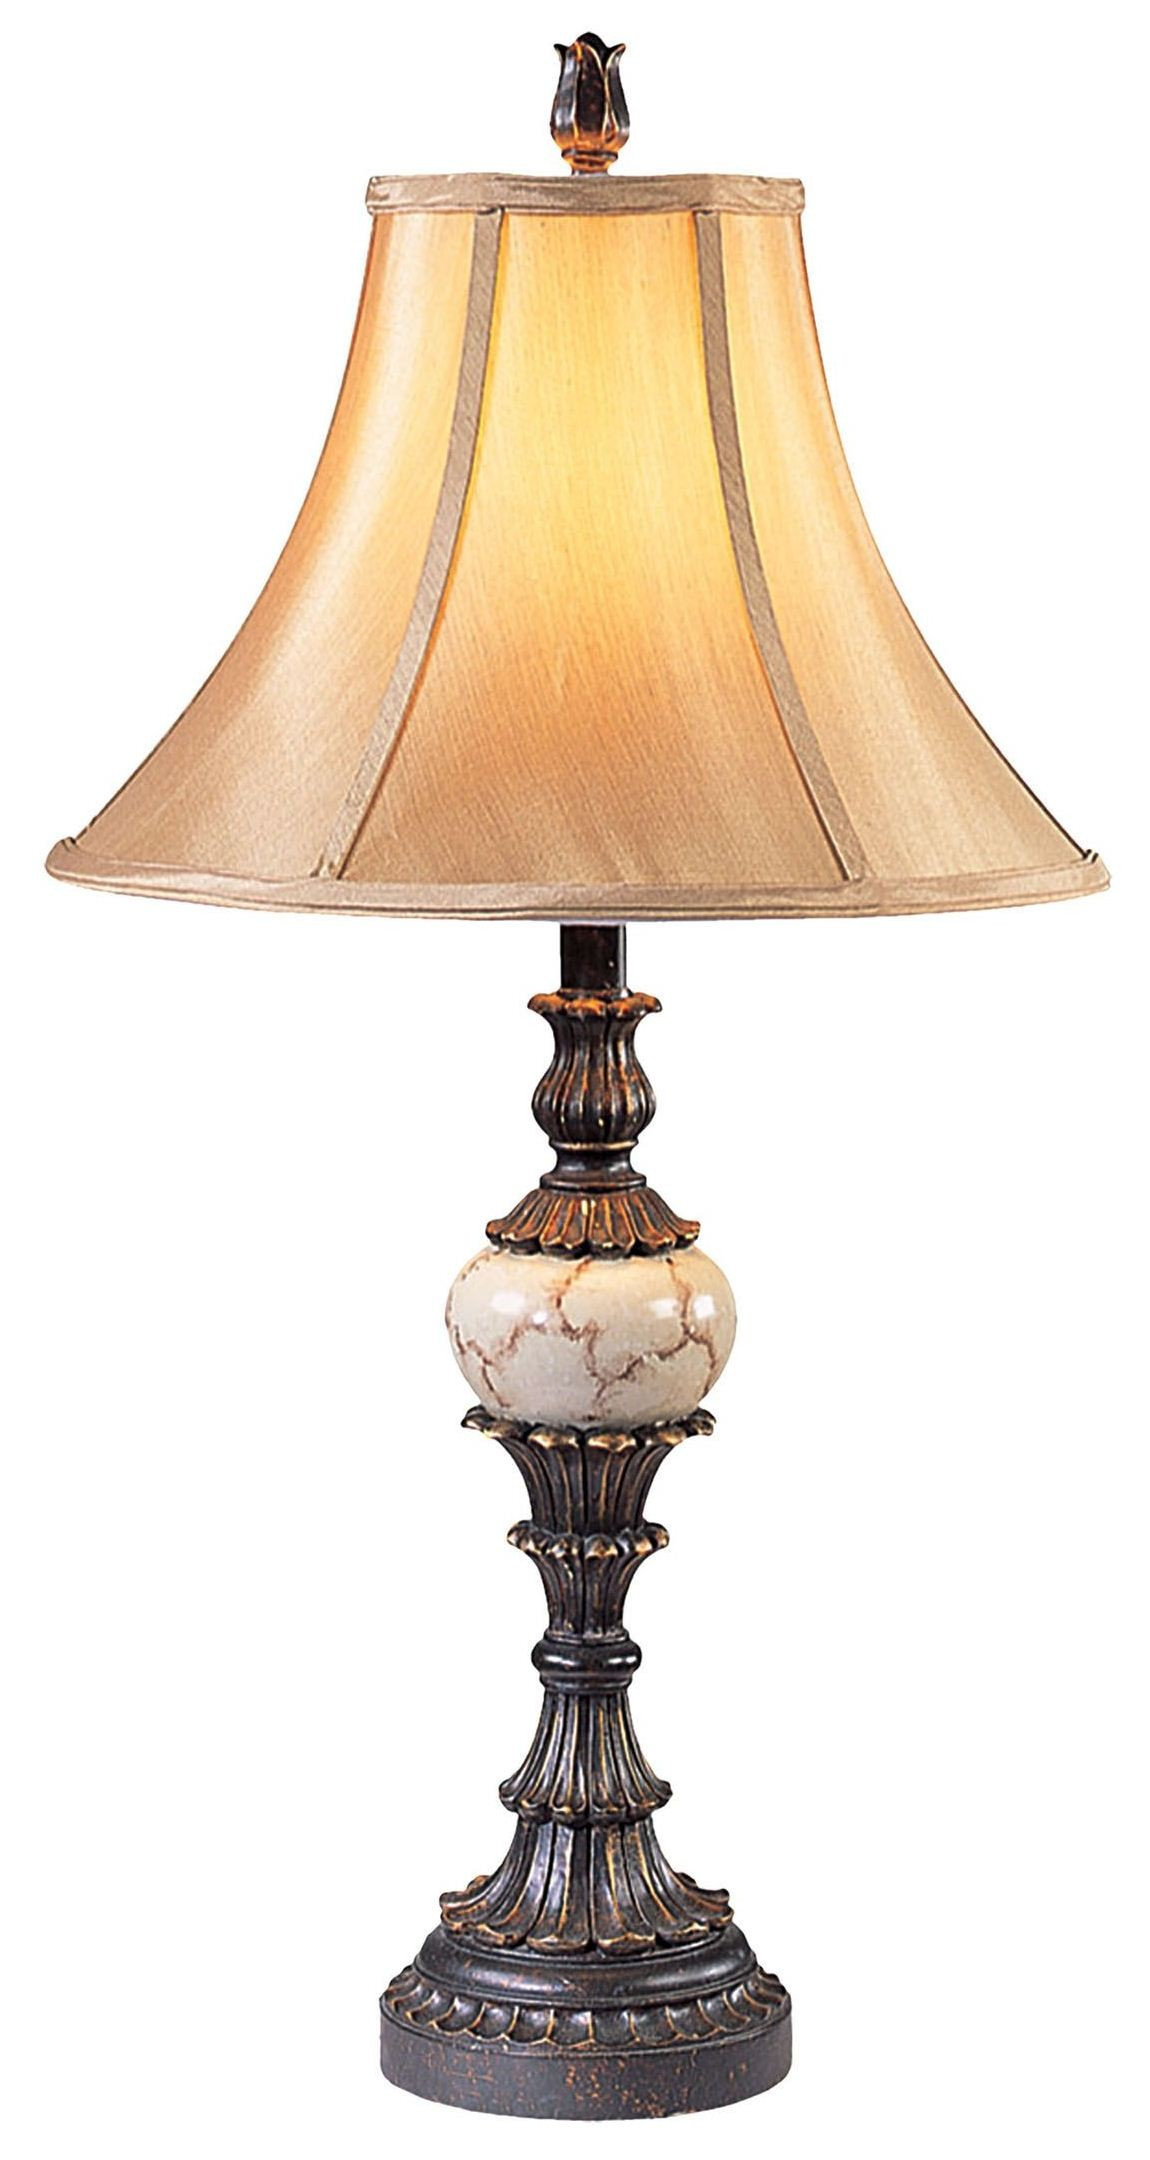 Antique Table Lamps Catalogs : Rosalie antique black table lamp set of from furniture